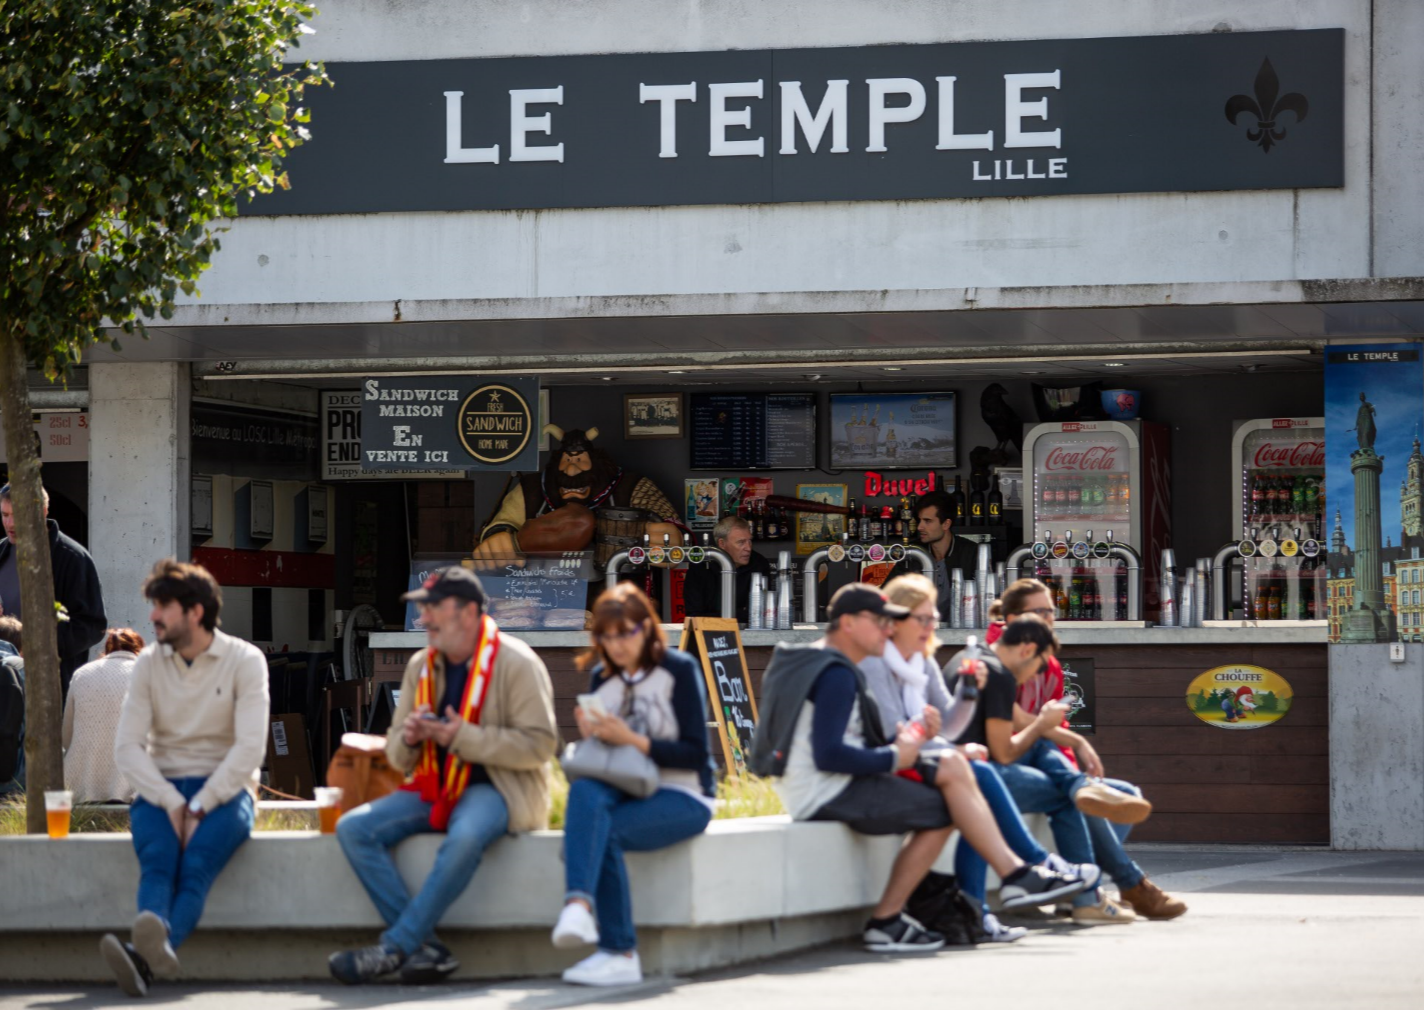 Le Temple - Lille - Stade Pierre Mauroy